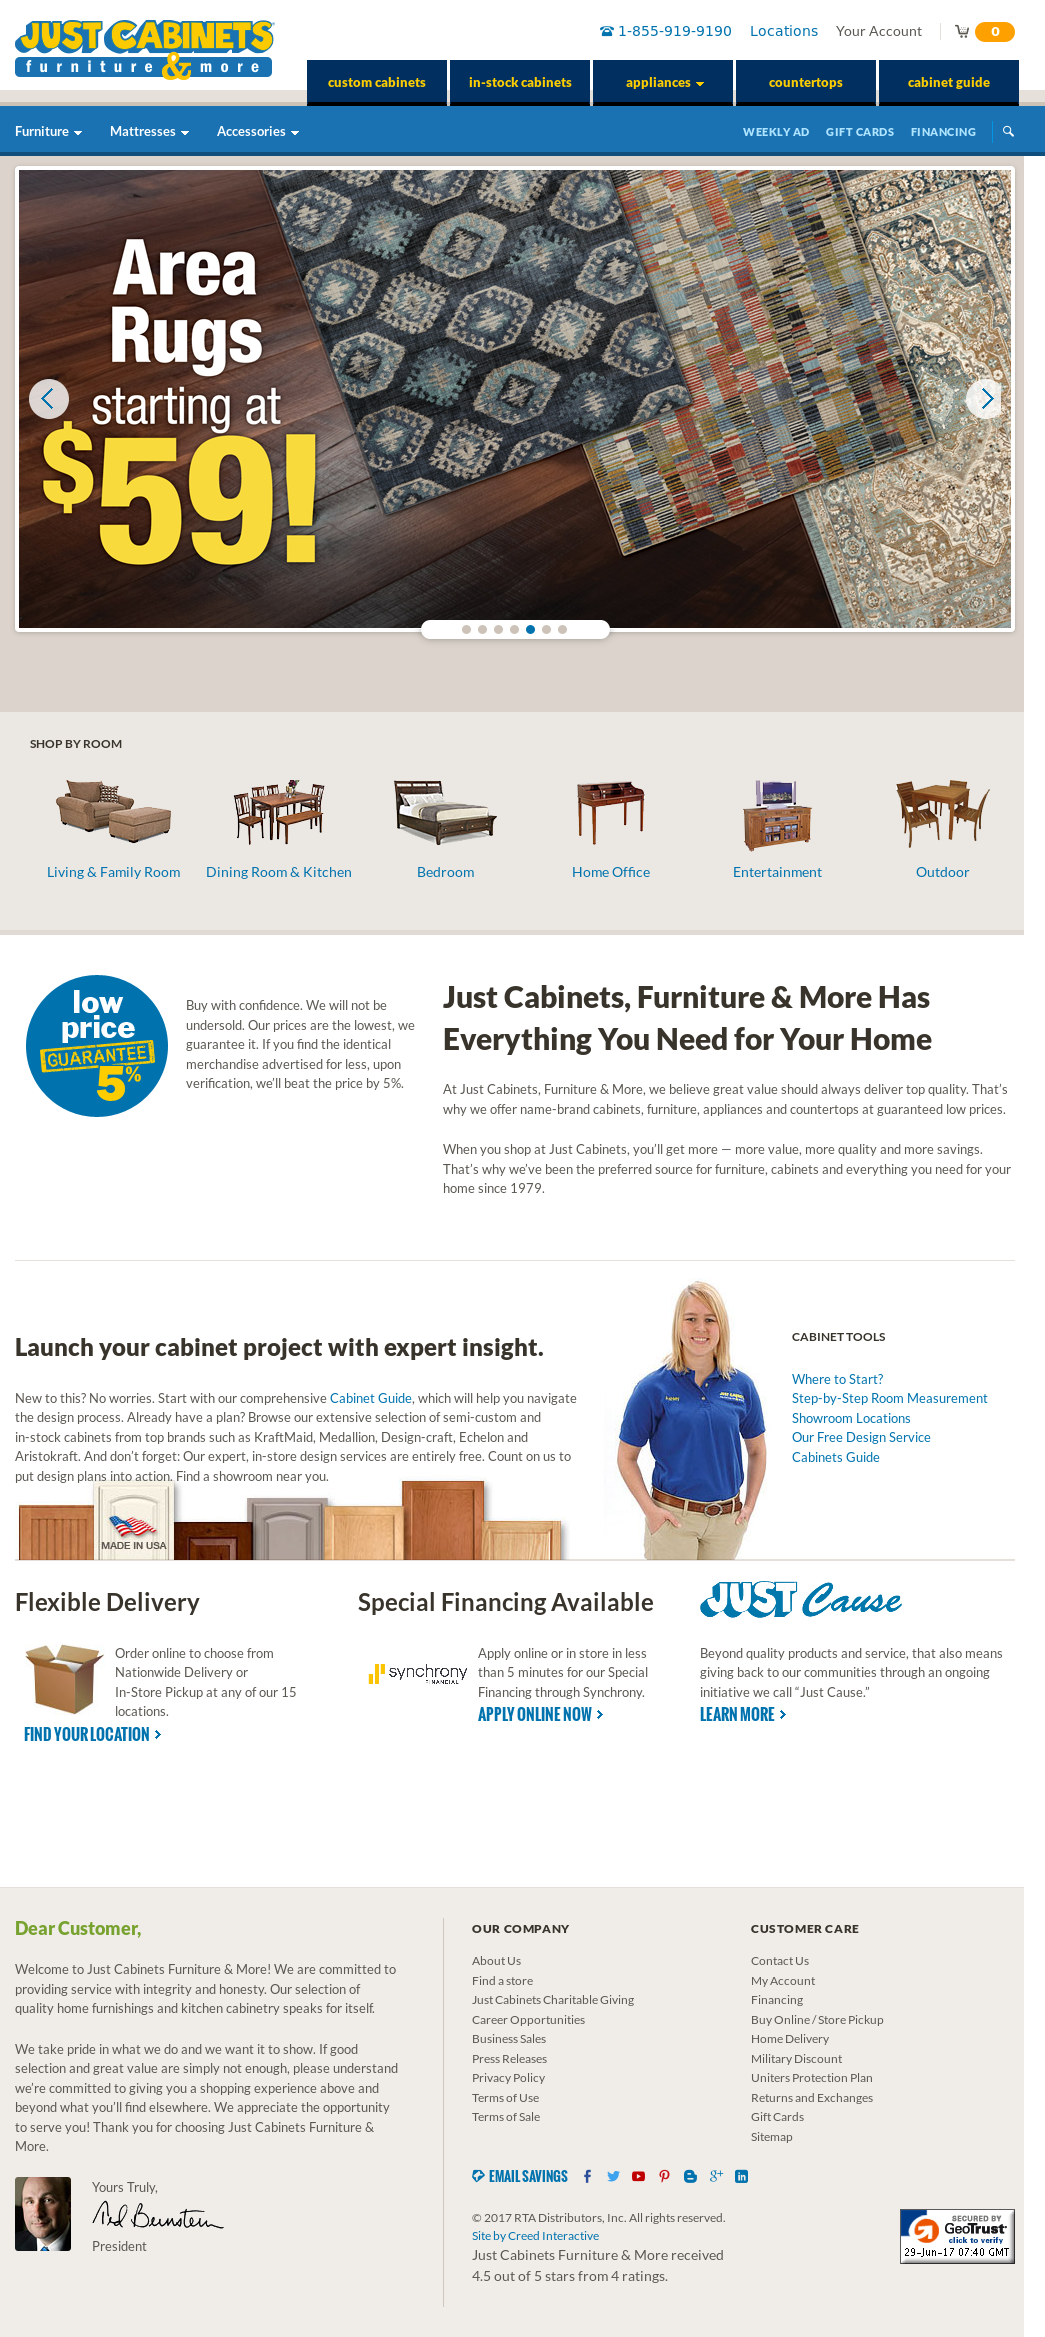 Justcabinets Website History